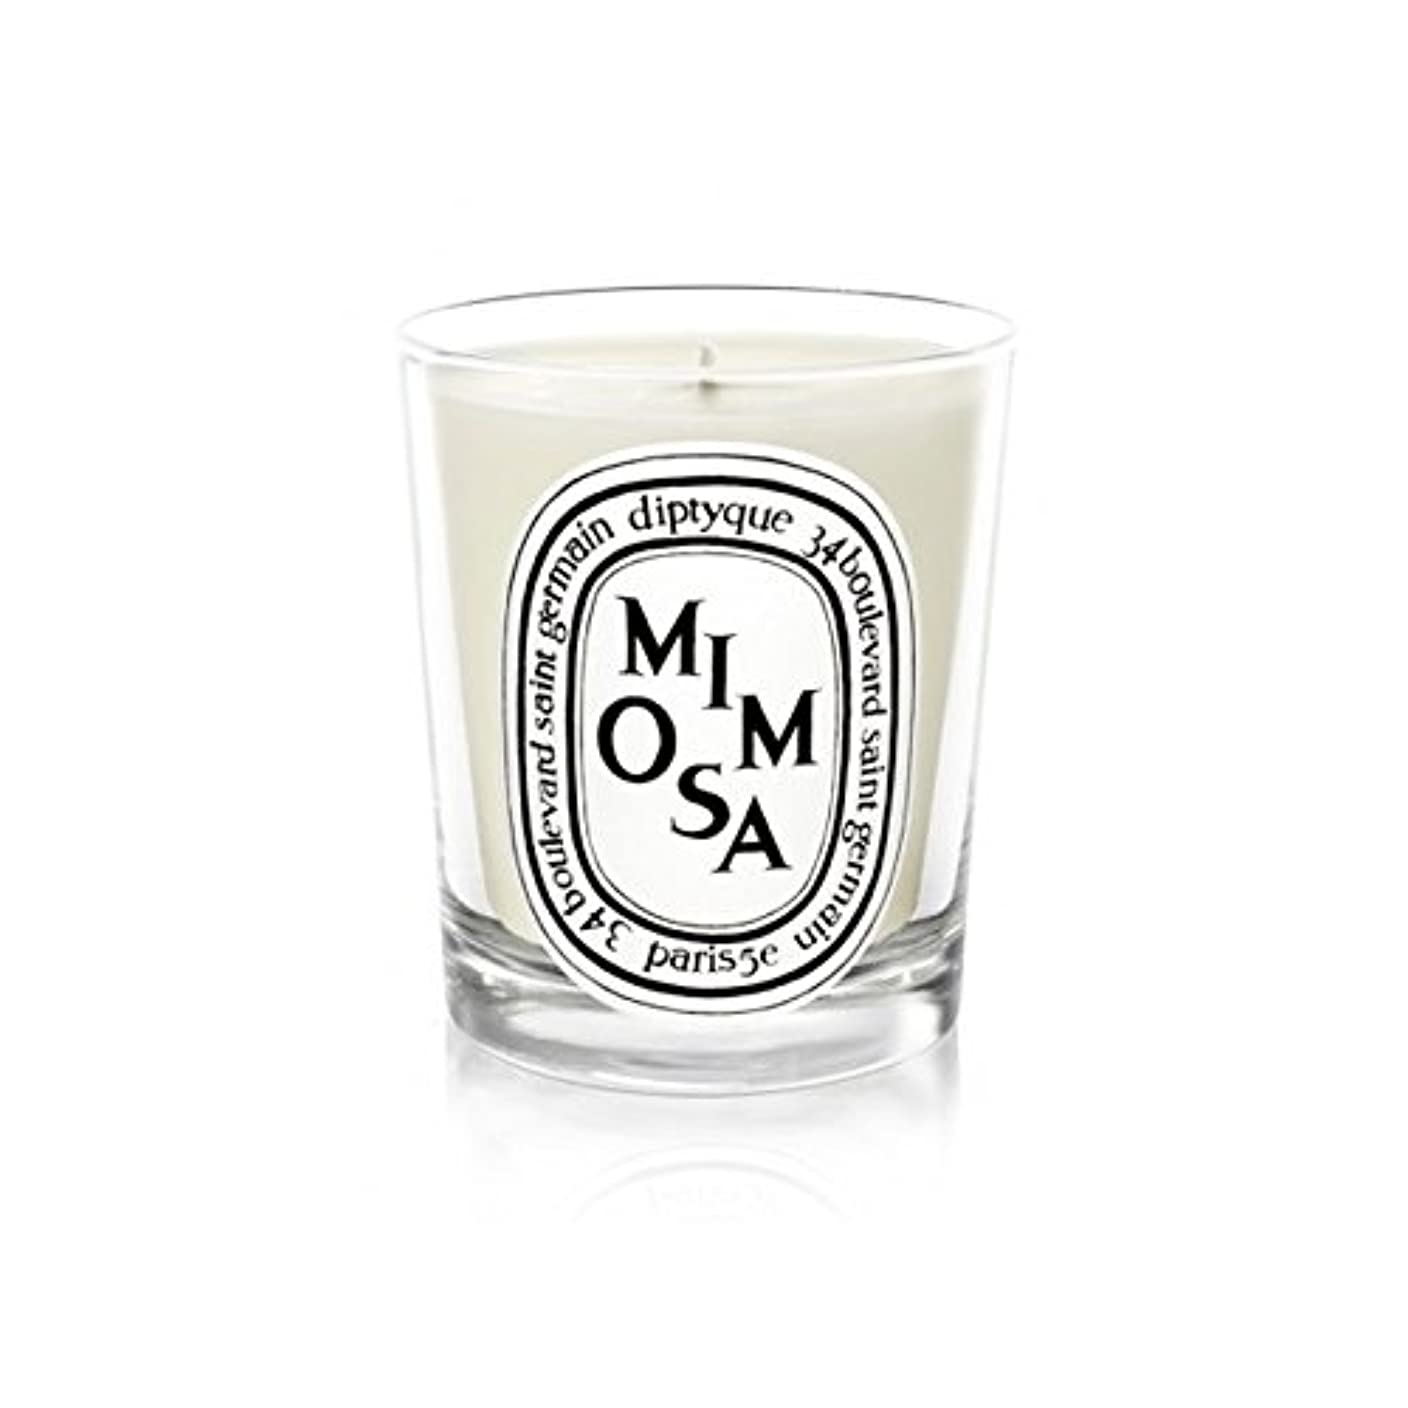 Diptyque Candle Mimosa / Mimosa 190g (Pack of 2) - Diptyqueキャンドルミモザ/ミモザ190グラム (x2) [並行輸入品]